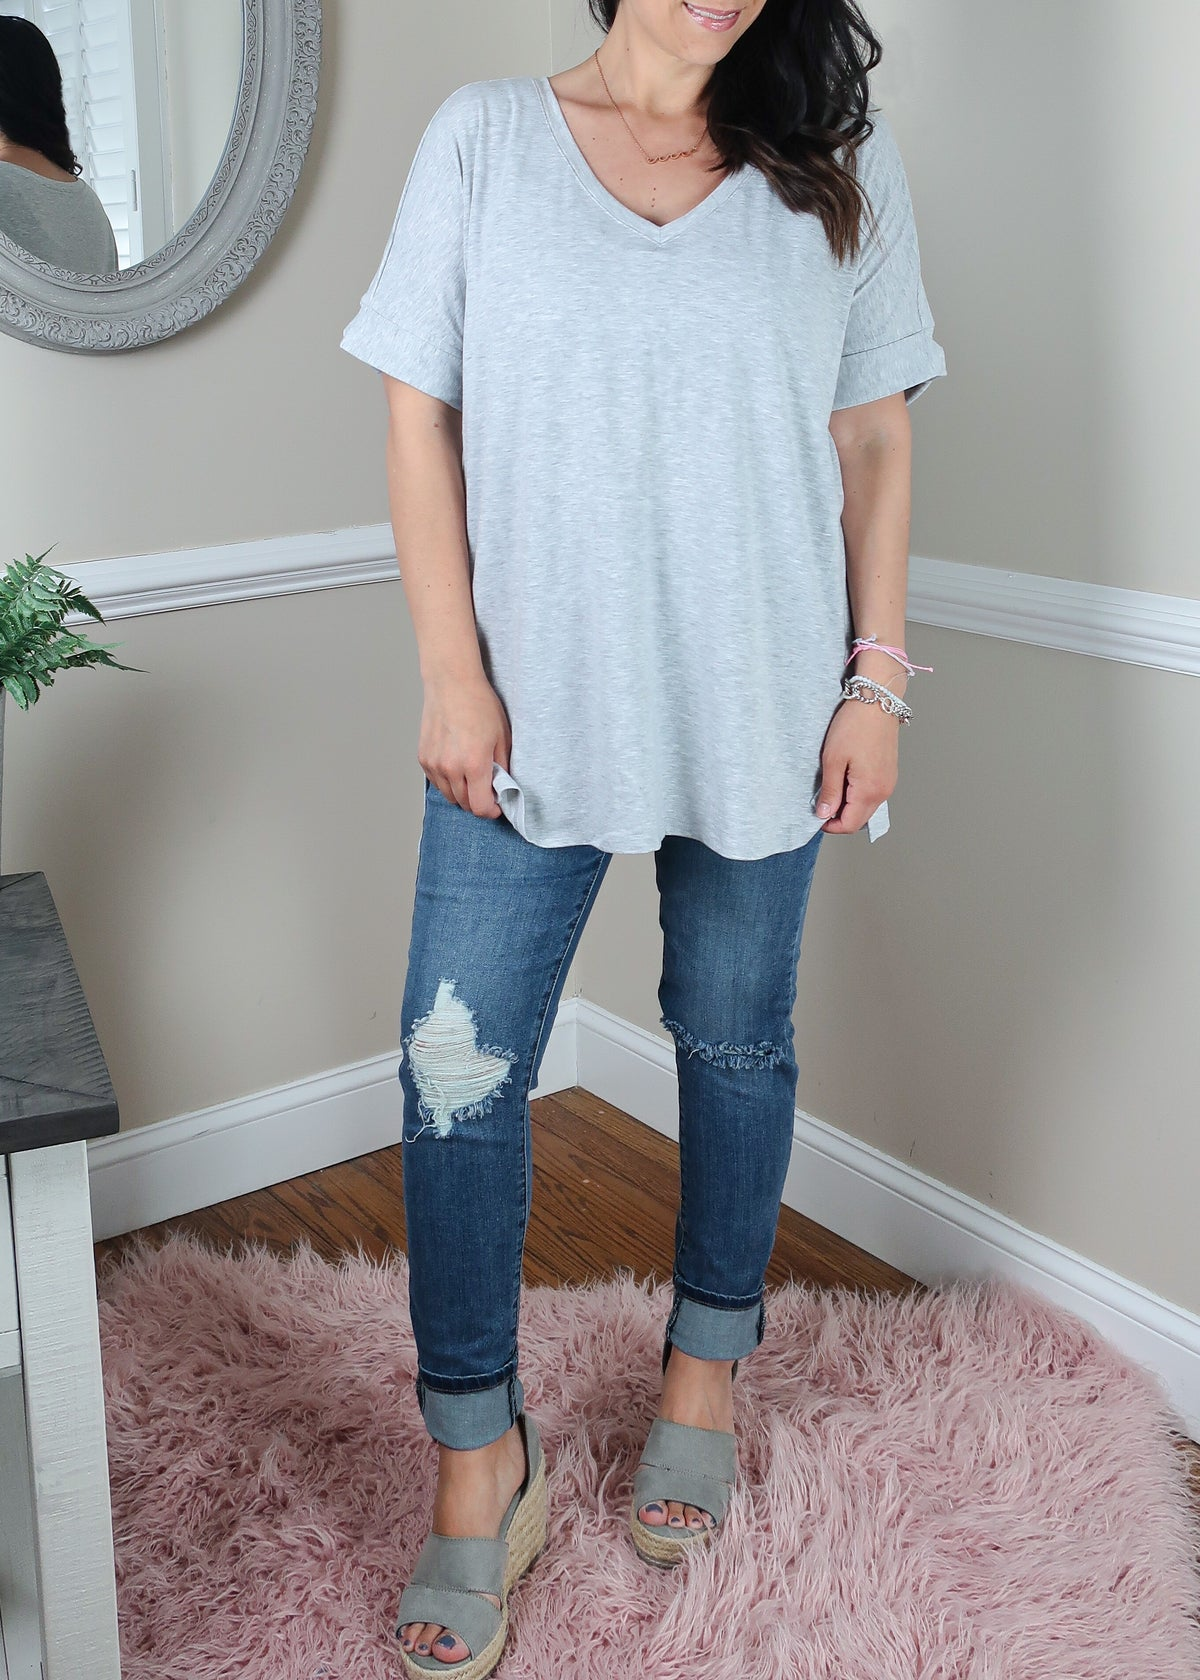 'Roll With It' Heather Gray Rolled Sleeve V-Neck Tee